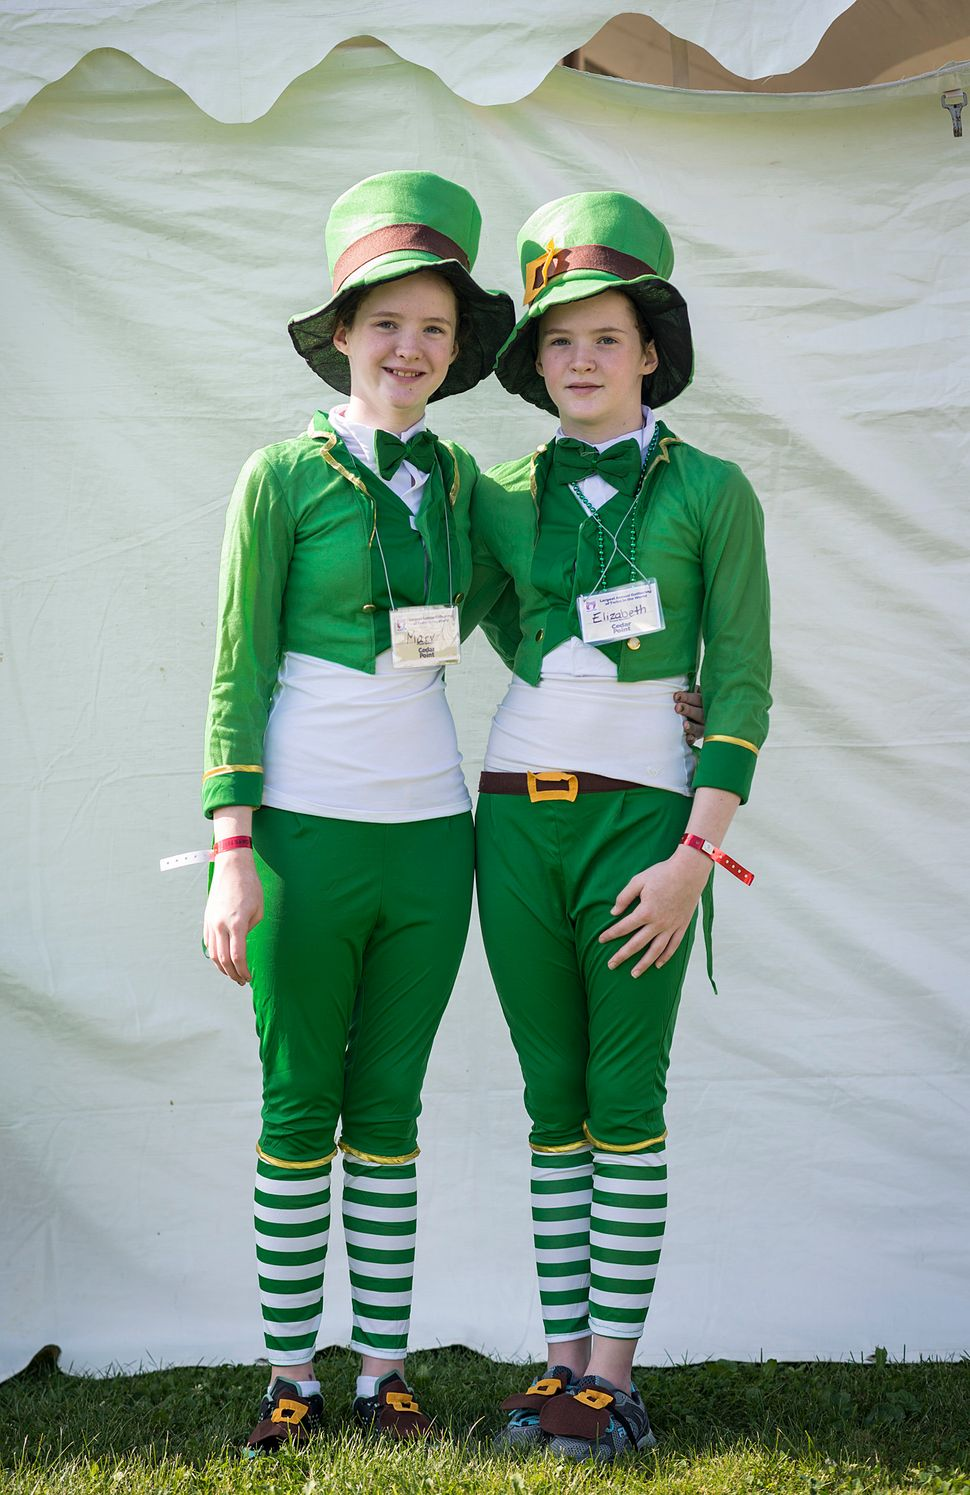 Mary (left)and Elizabeth Gillen have fun with their Irish history.